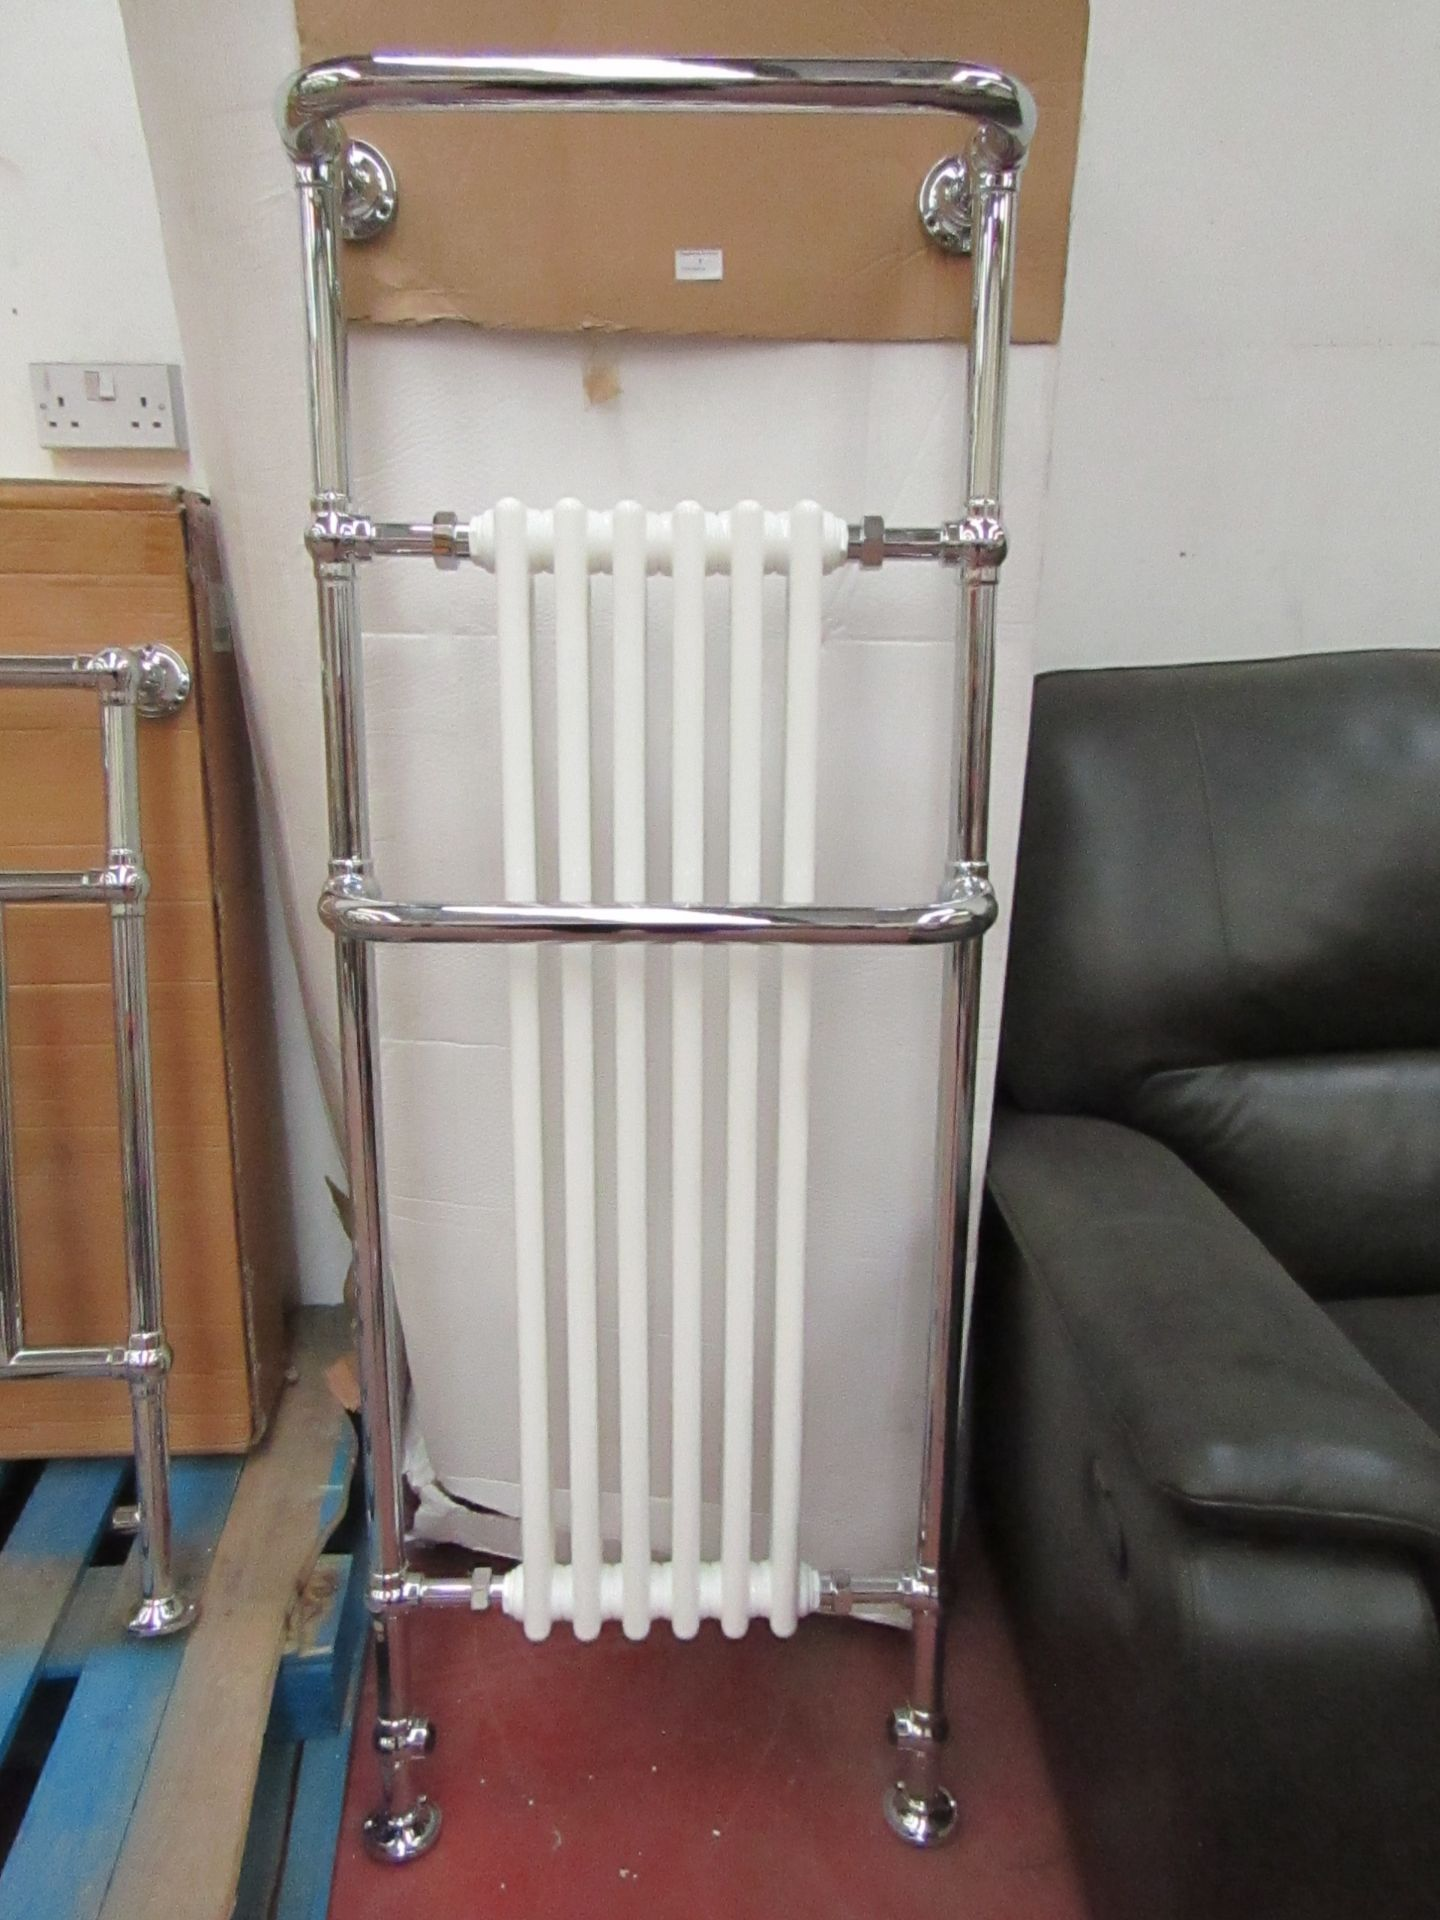 Lot 1 - Imperial Malmo 6 bar radiator approx 1500x550